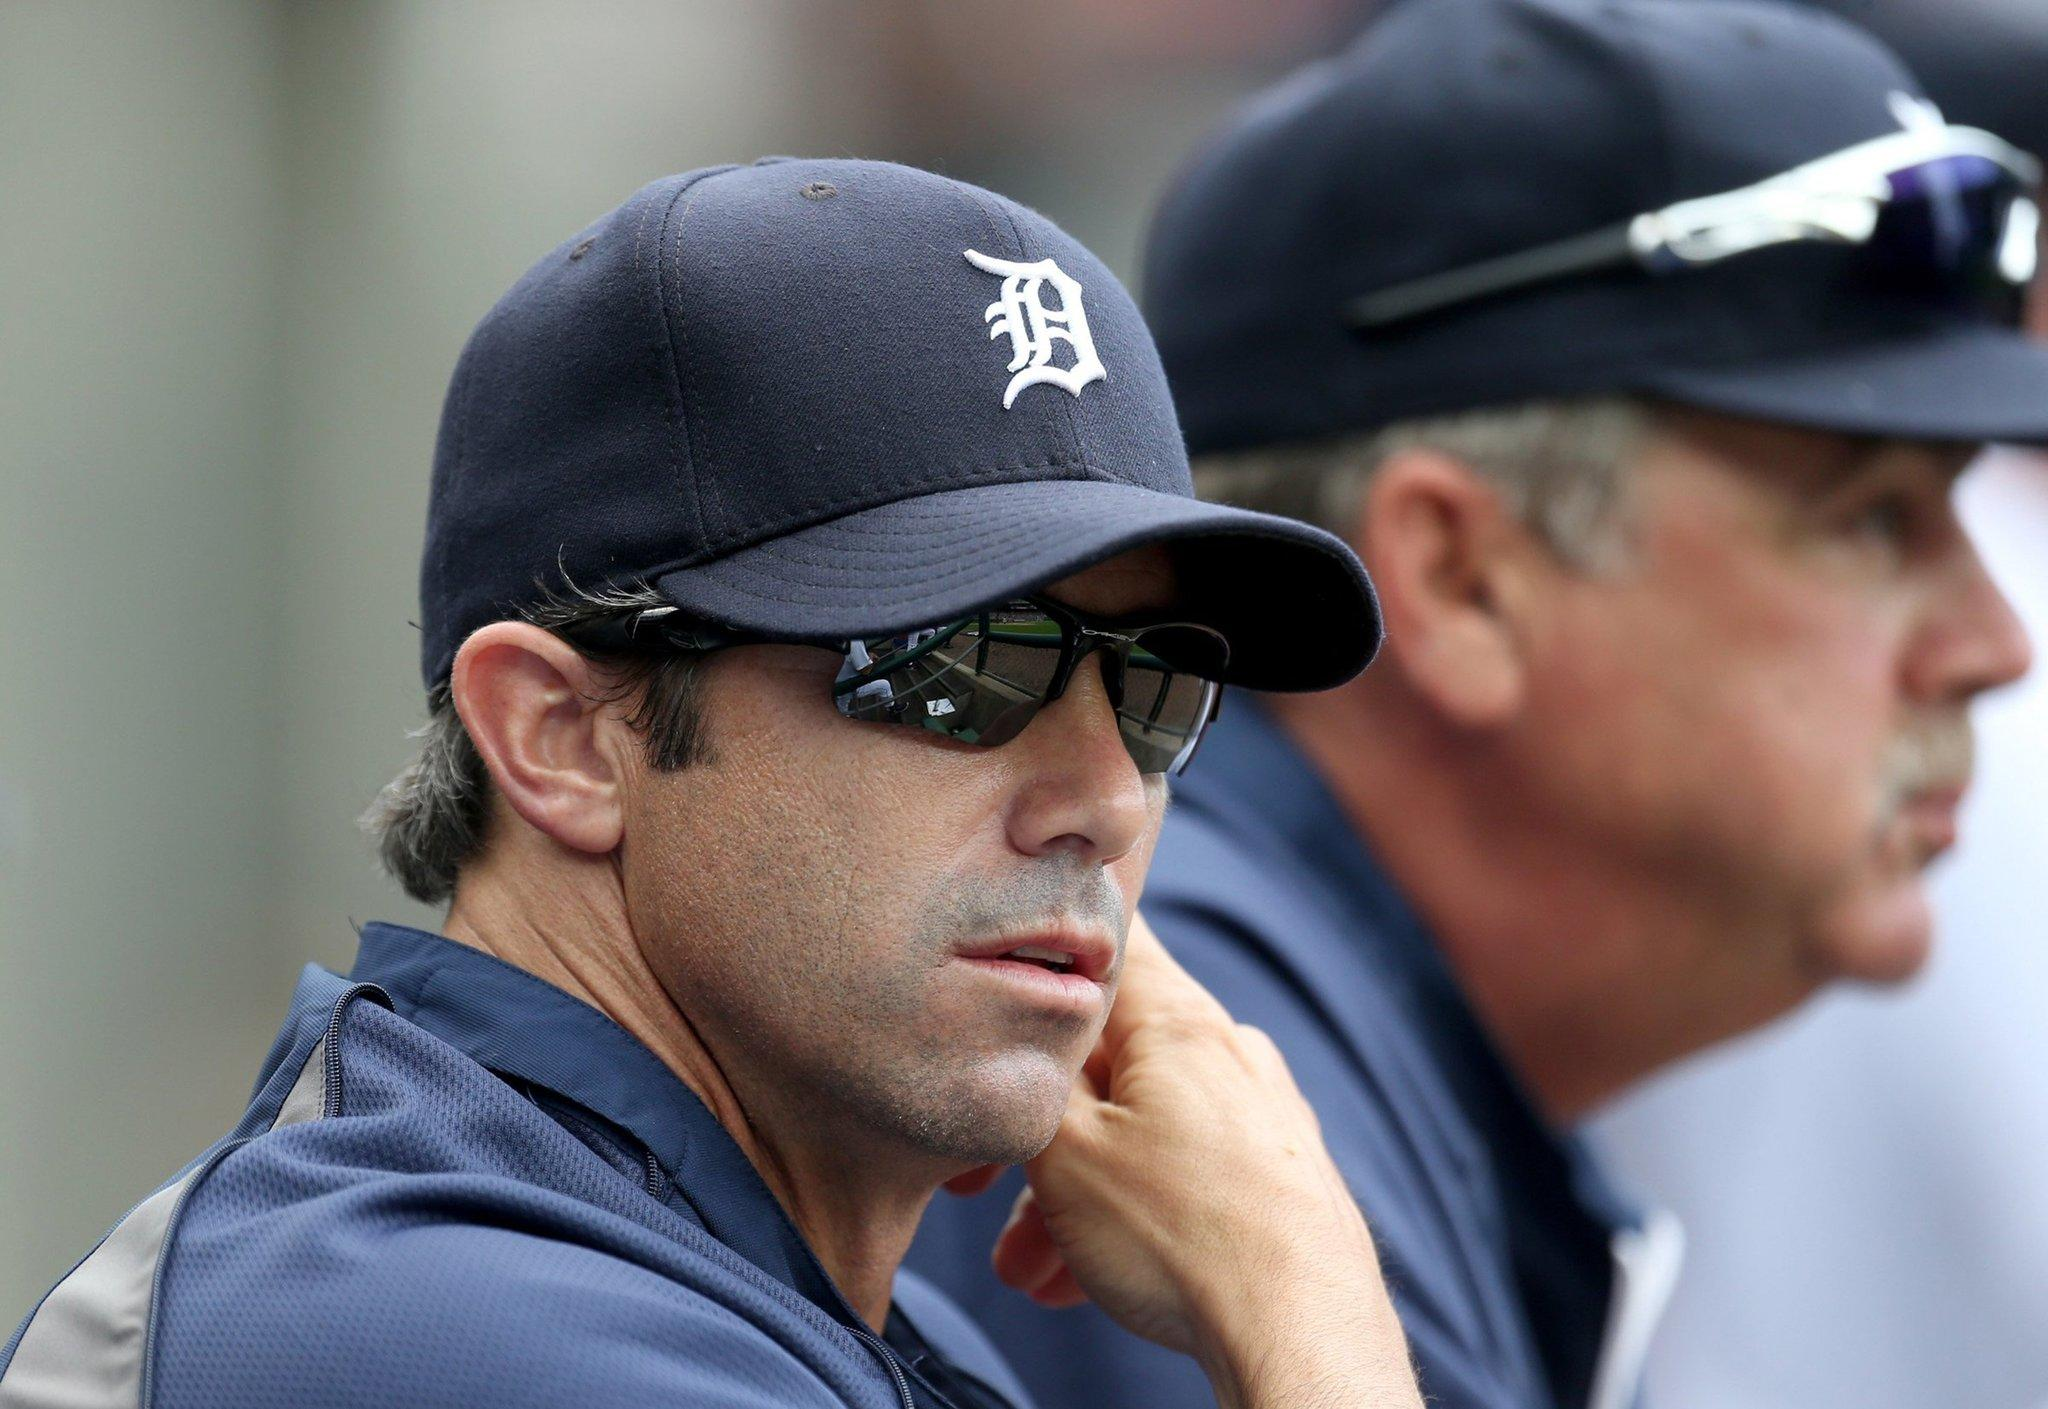 Detroit Tigers manager Brad Ausmus sits in the dugout.